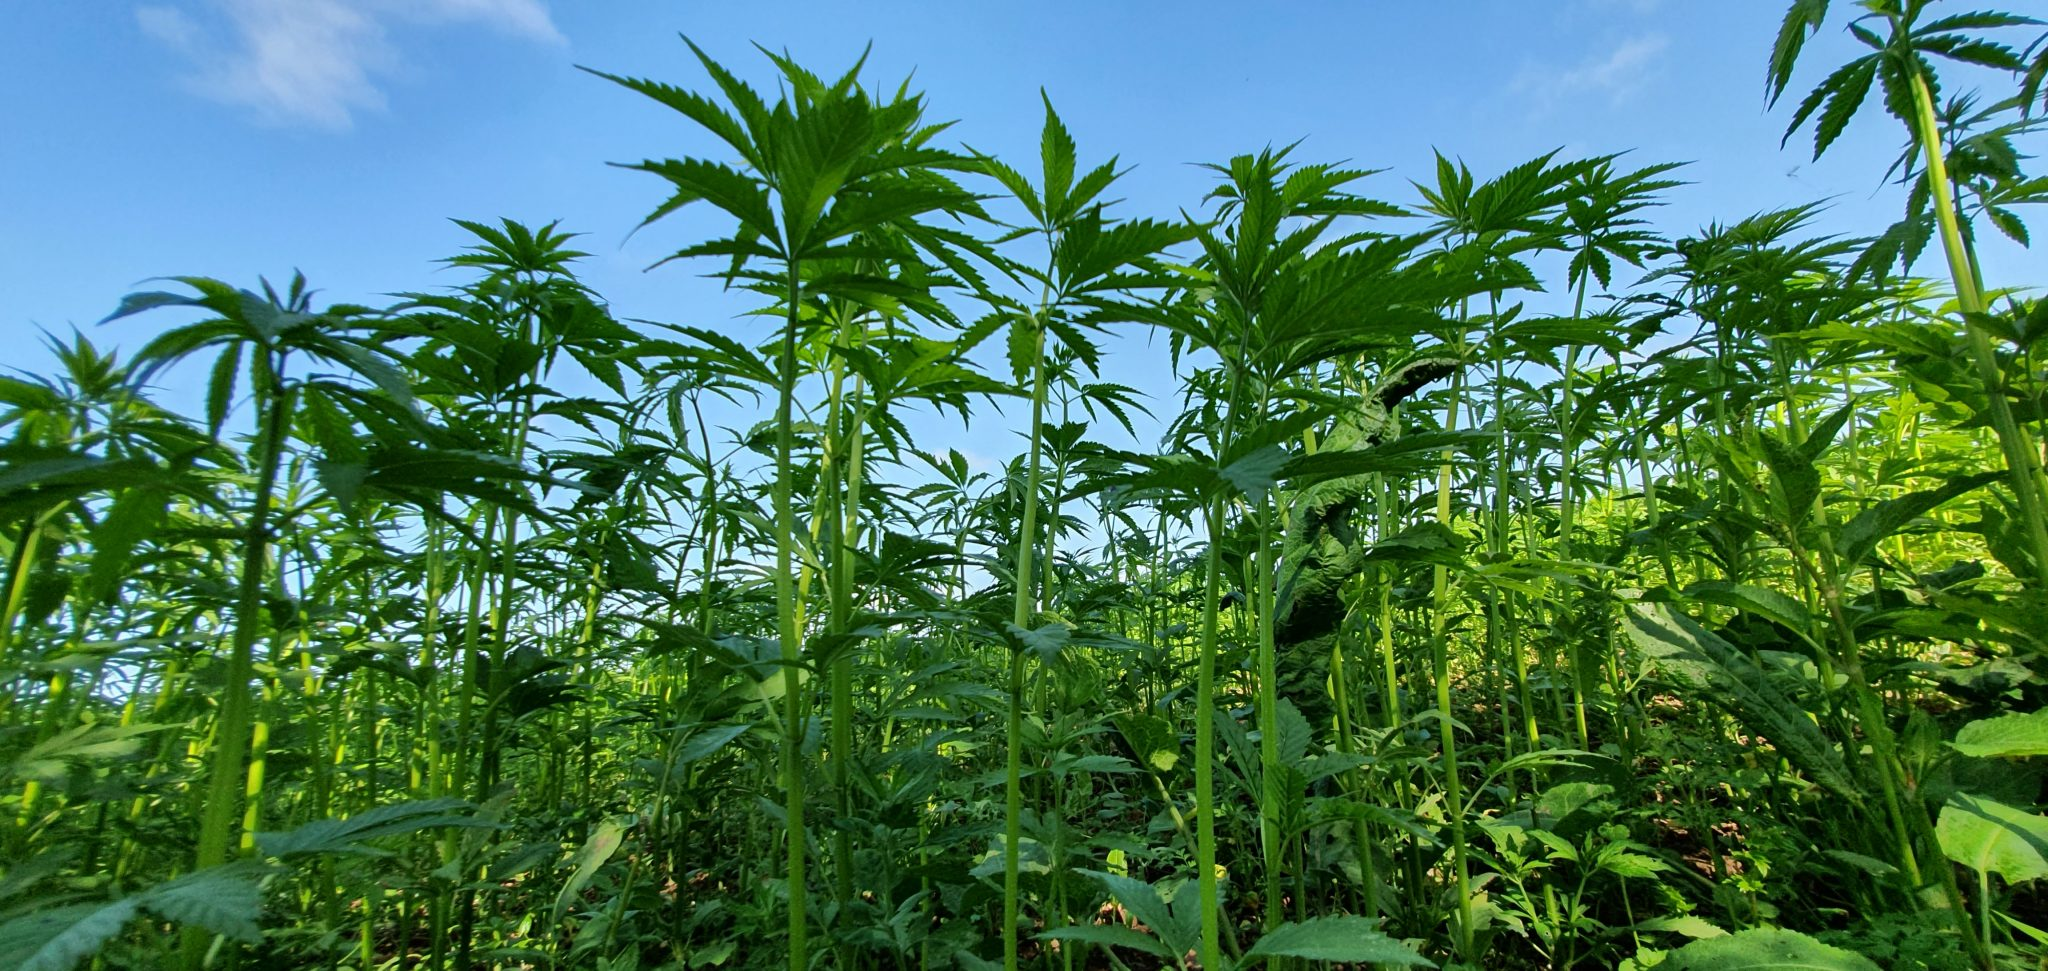 Hemp plants growing under home office licence near market harborough